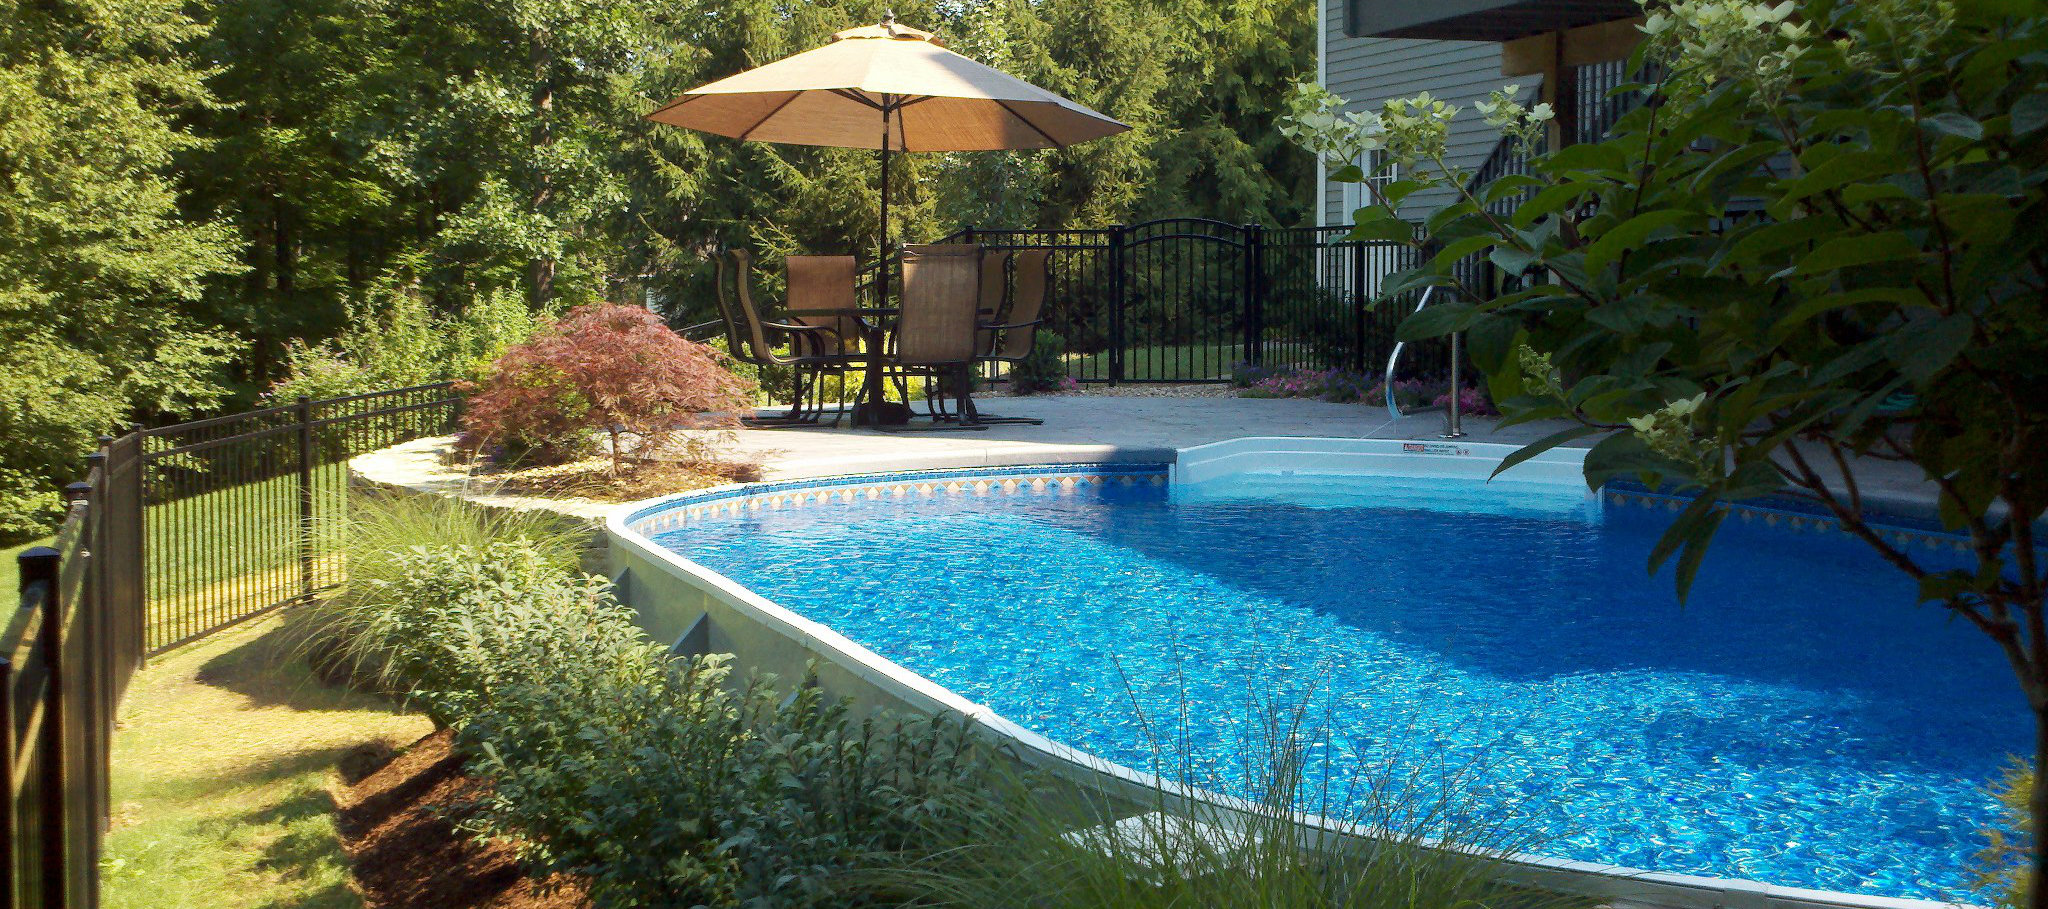 Radiant Pools Memorial Day Special: